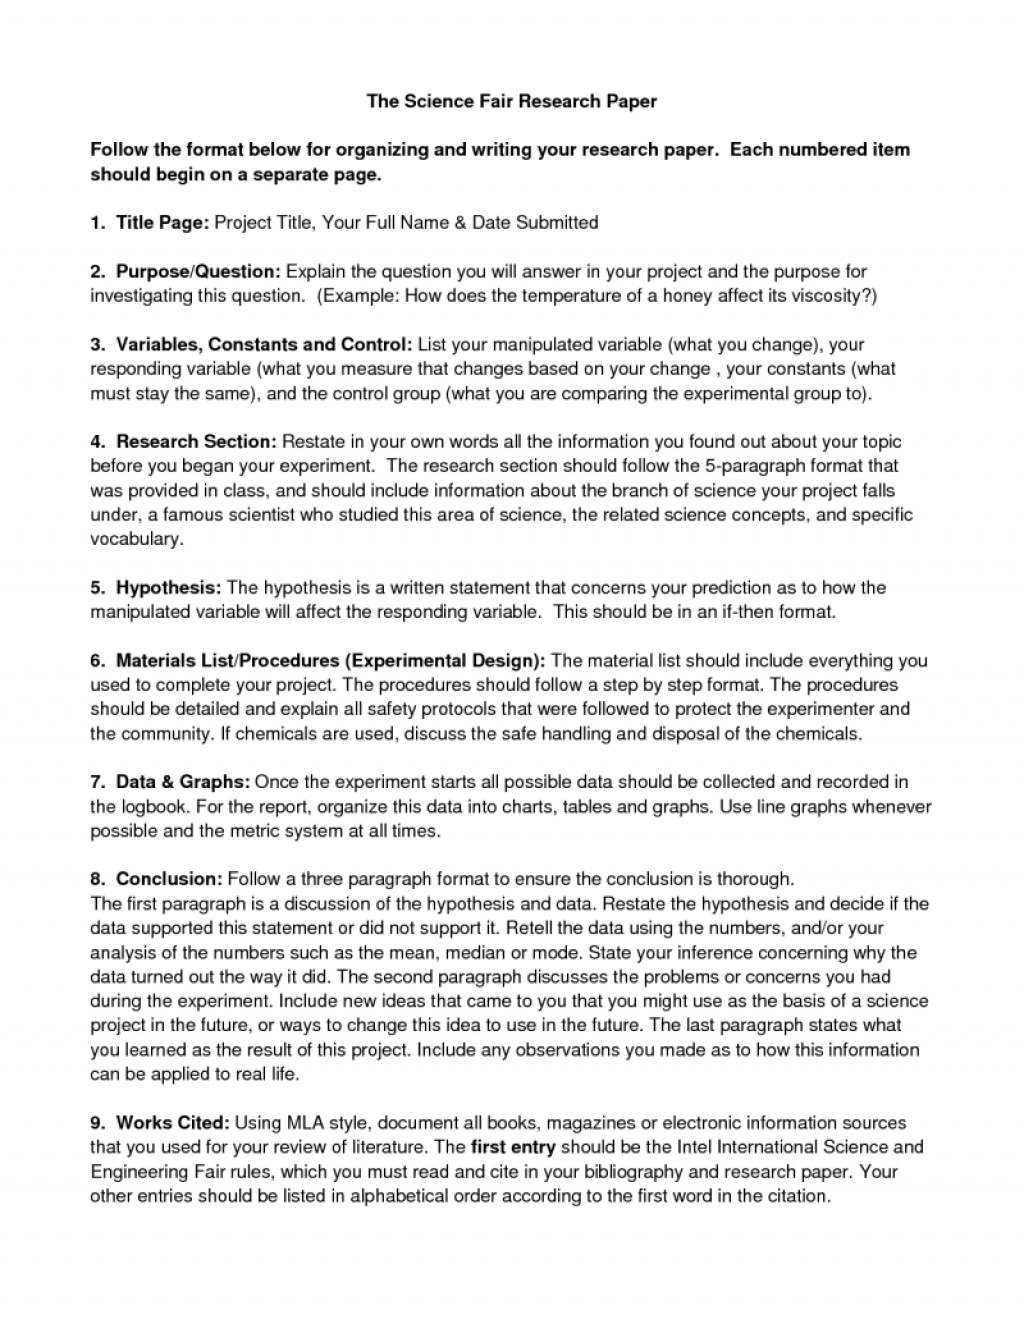 024 Ideas Of Science Fair Research Paper Outline Unique Political Guidelines Guidelinesresize8002c1035 Rare College Format Apa Sample Large